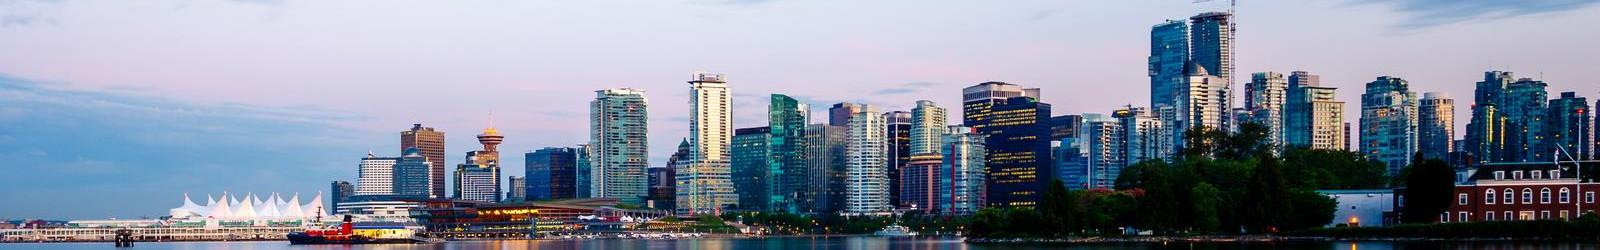 Therapists in Vancouver, British Columbia: psychologists, counselors, and mental health specialists